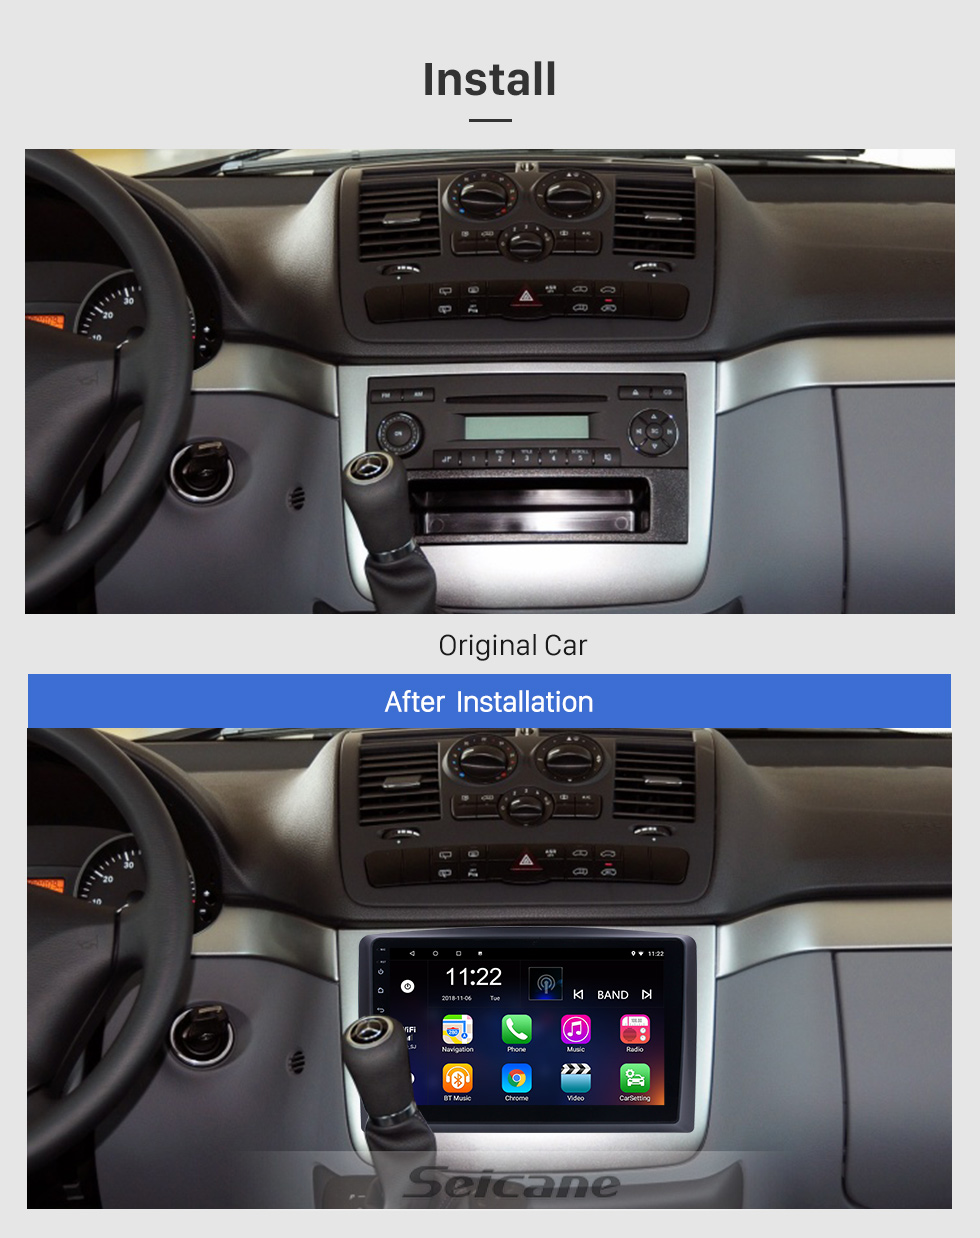 Seicane 10.1 inch Android 8.1 for 2010 2011 2012-2015 Mercedes Benz Vito Radio Bluetooth HD Touchscreen GPS Navigation System support Carplay TPMS